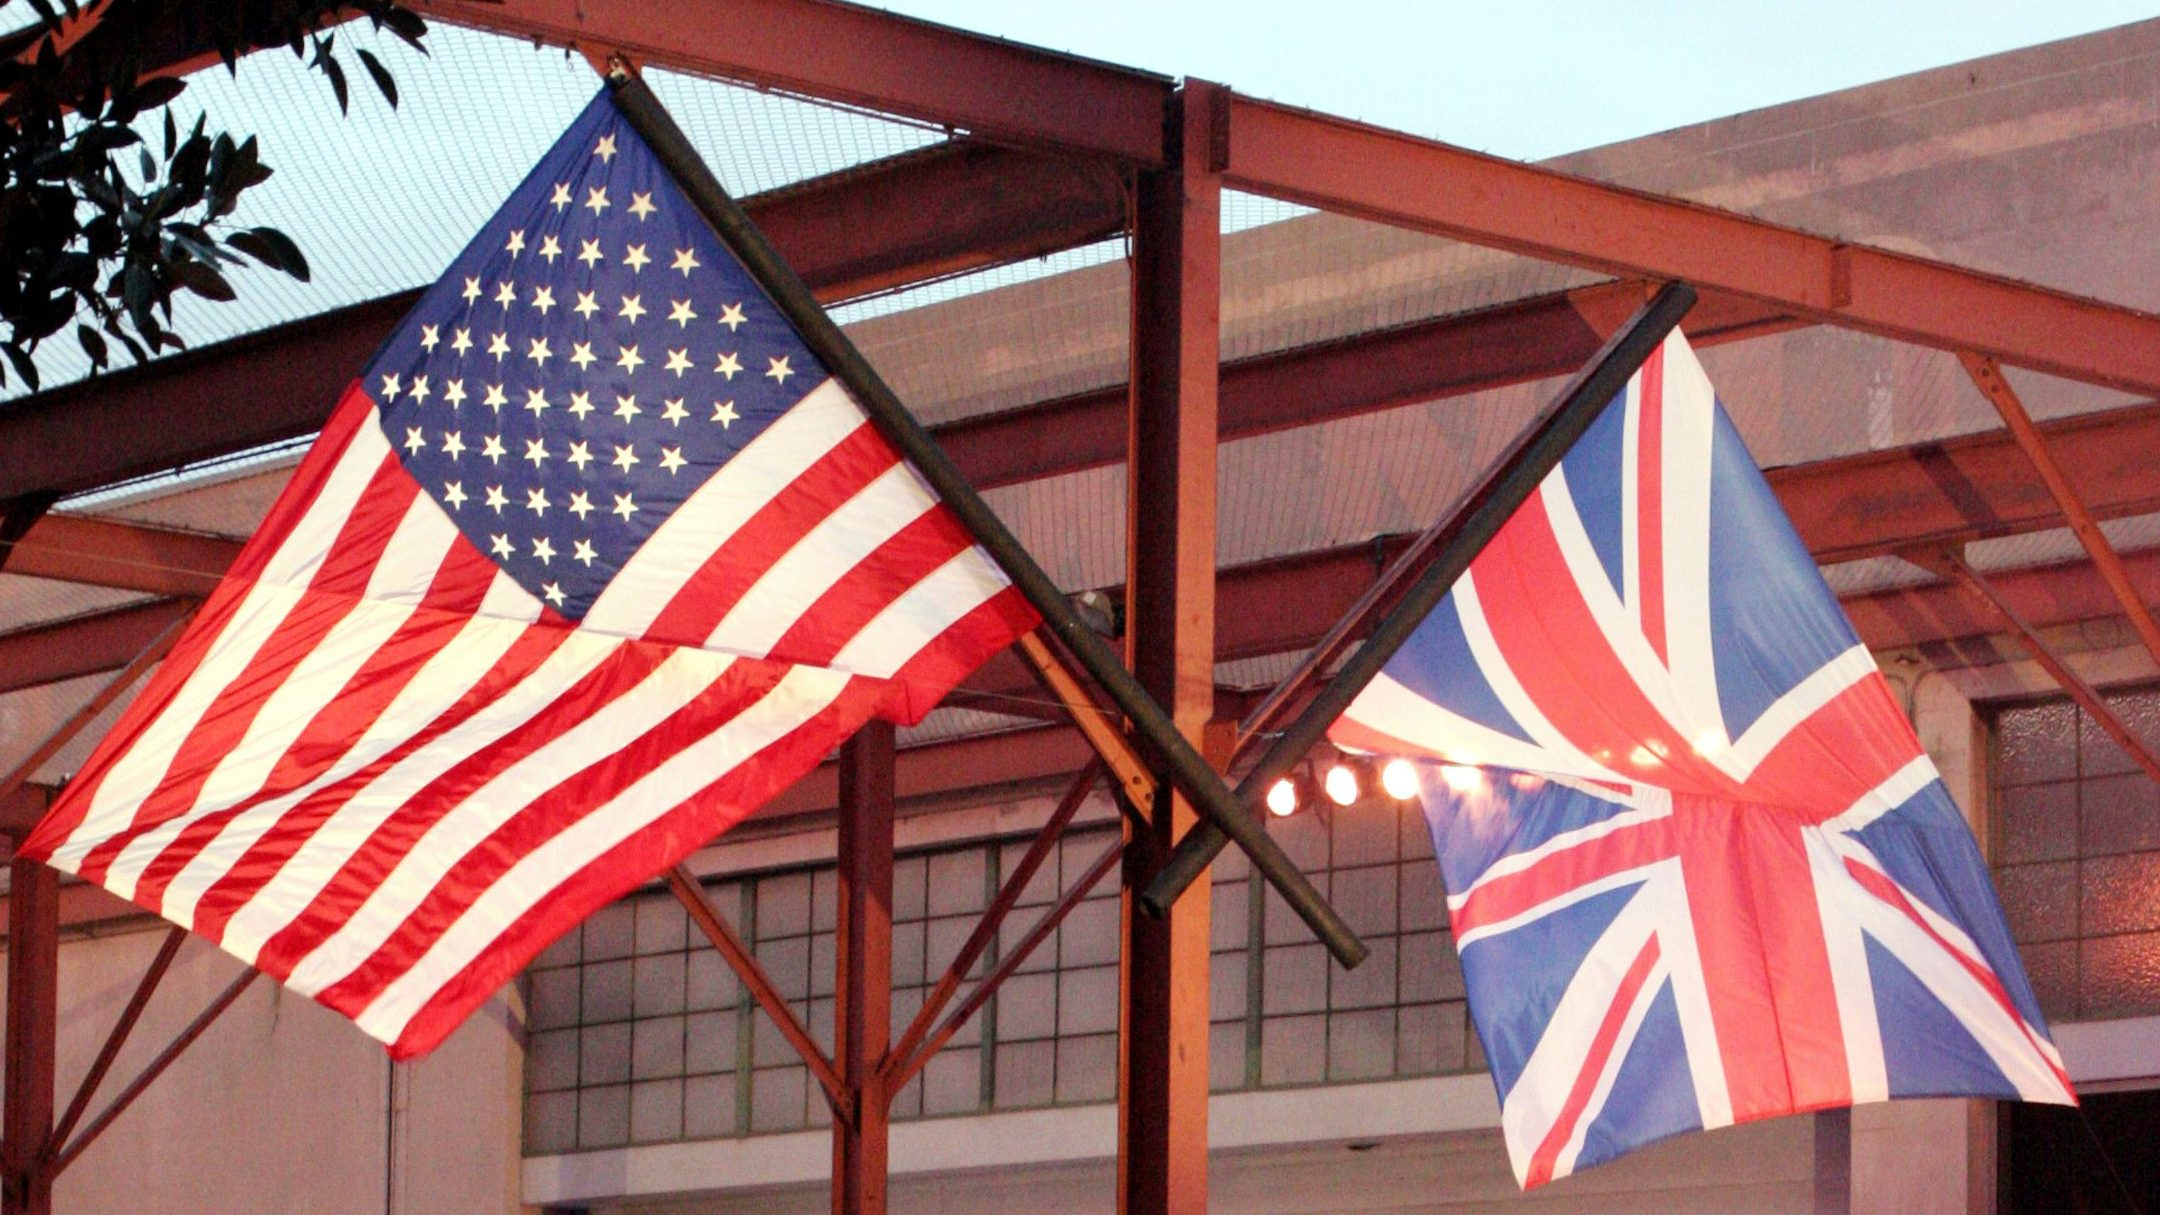 An American and British flag fly as a valet runs past photographers during a private party held in honor of David and Victoria Beckham at the Museum of Contemporary Art, Sunday, July 22, 2007, in Los Angeles. (AP Photo/Rene Macura)